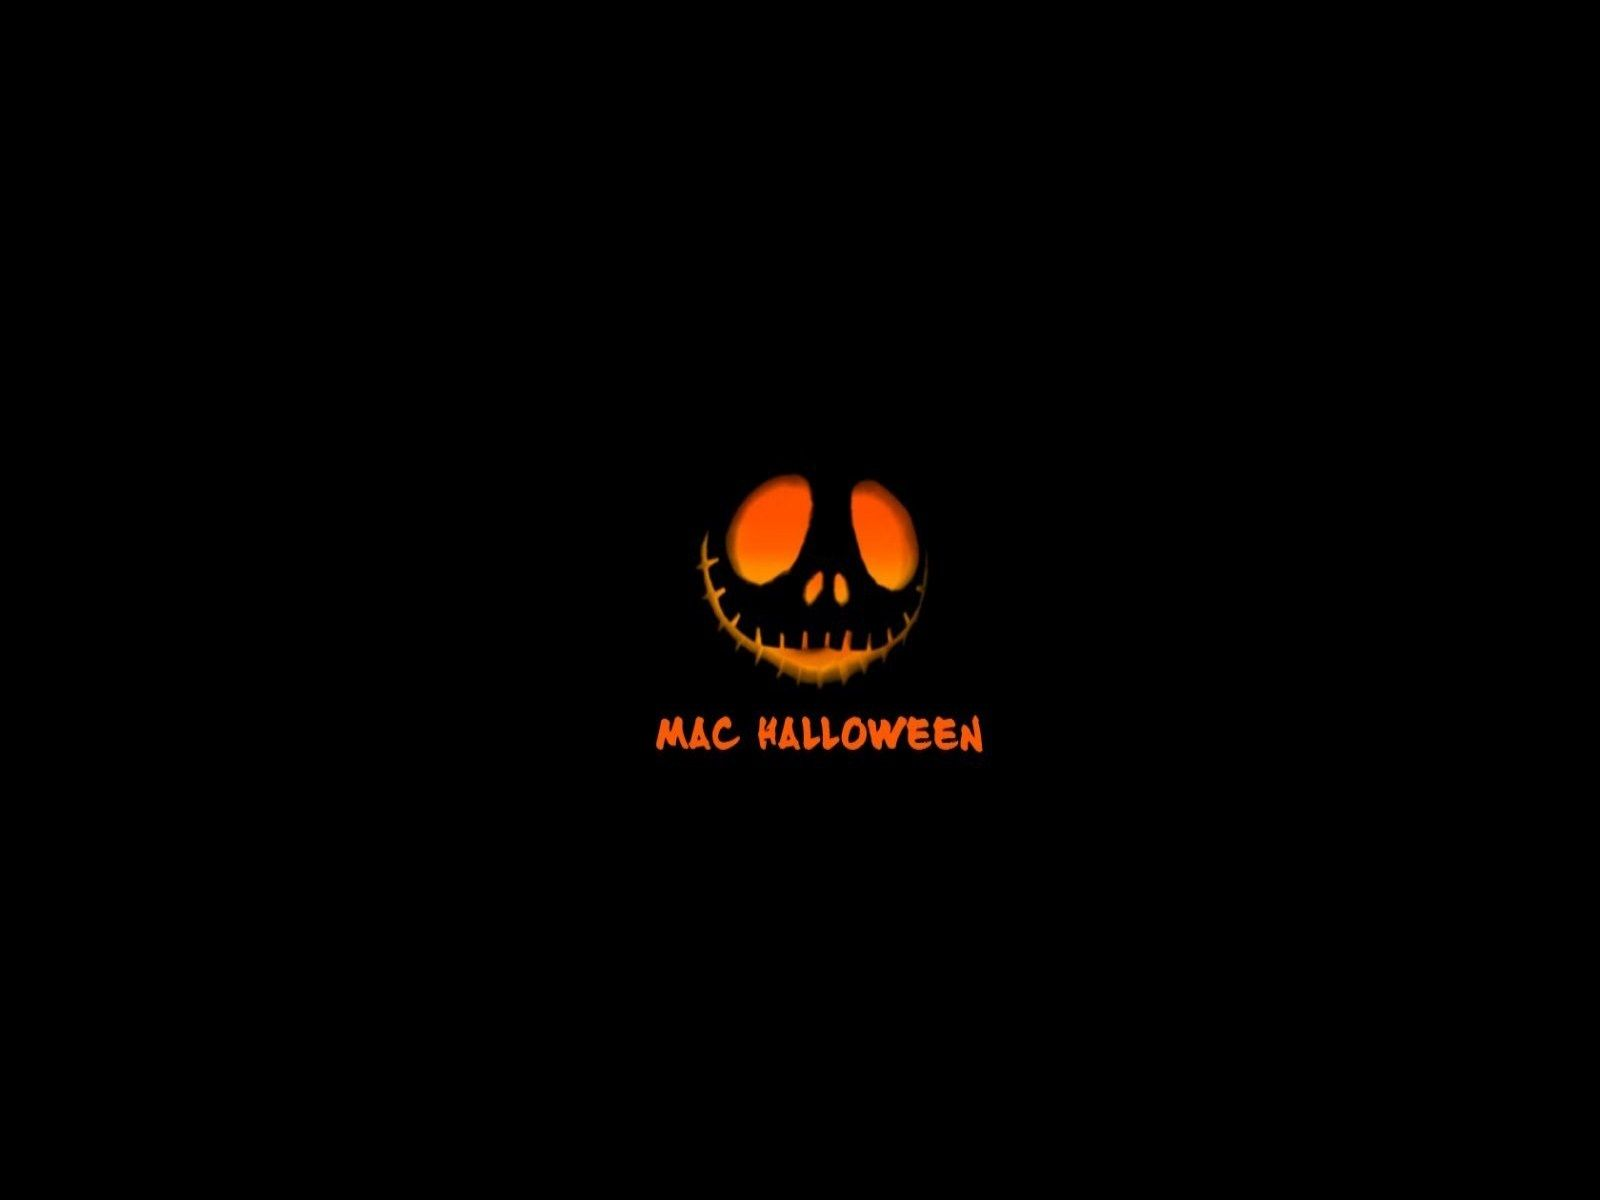 Good Wallpaper Macbook Halloween - 52c24d5b908f3795d6ae9728a981e22c  Photograph_718813.jpg